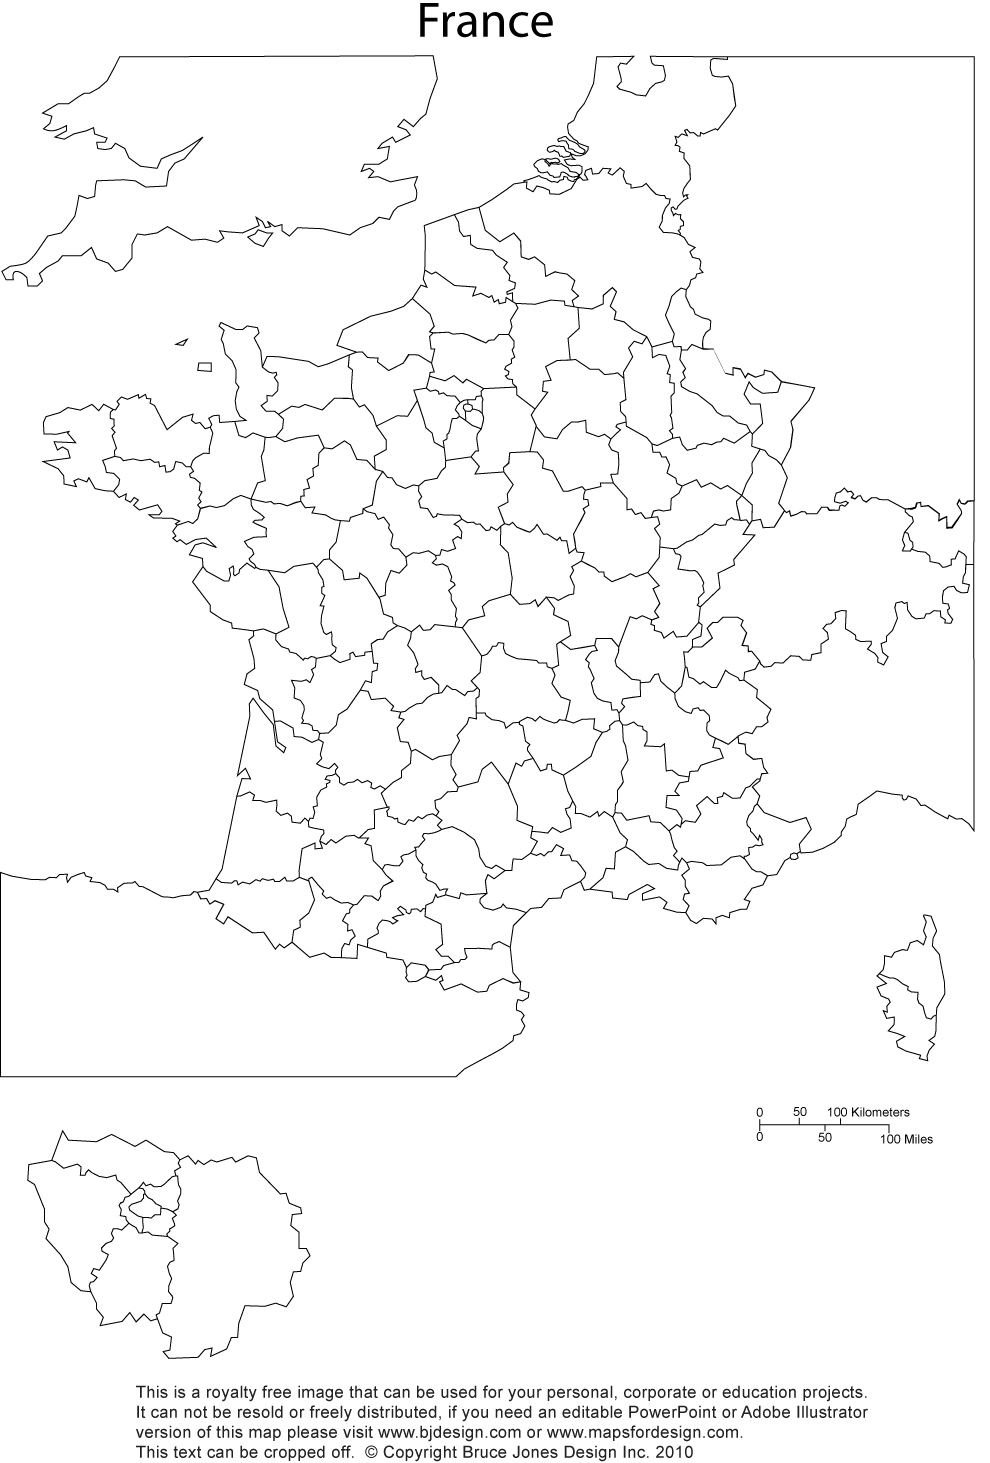 France Map, Printable, blank, royalty free, jpg on map of countries that border france, map of france and turkey, map with countries border iran, map of france and neighboring countries, map of france regions departements, map of france and mountains, map of monaco and surrounding countries, map pyrenees france, map french regions in france, france and surrounding countries, map of brussels and surrounding countries, map of france and seas, map of france burgundy wine region, map of france and neighbouring countries, us map with surrounding countries, map of ancient greece and greek islands, map of france after french revolution, map of france wine growing regions, map with italy flag, map of france and outlying countries,